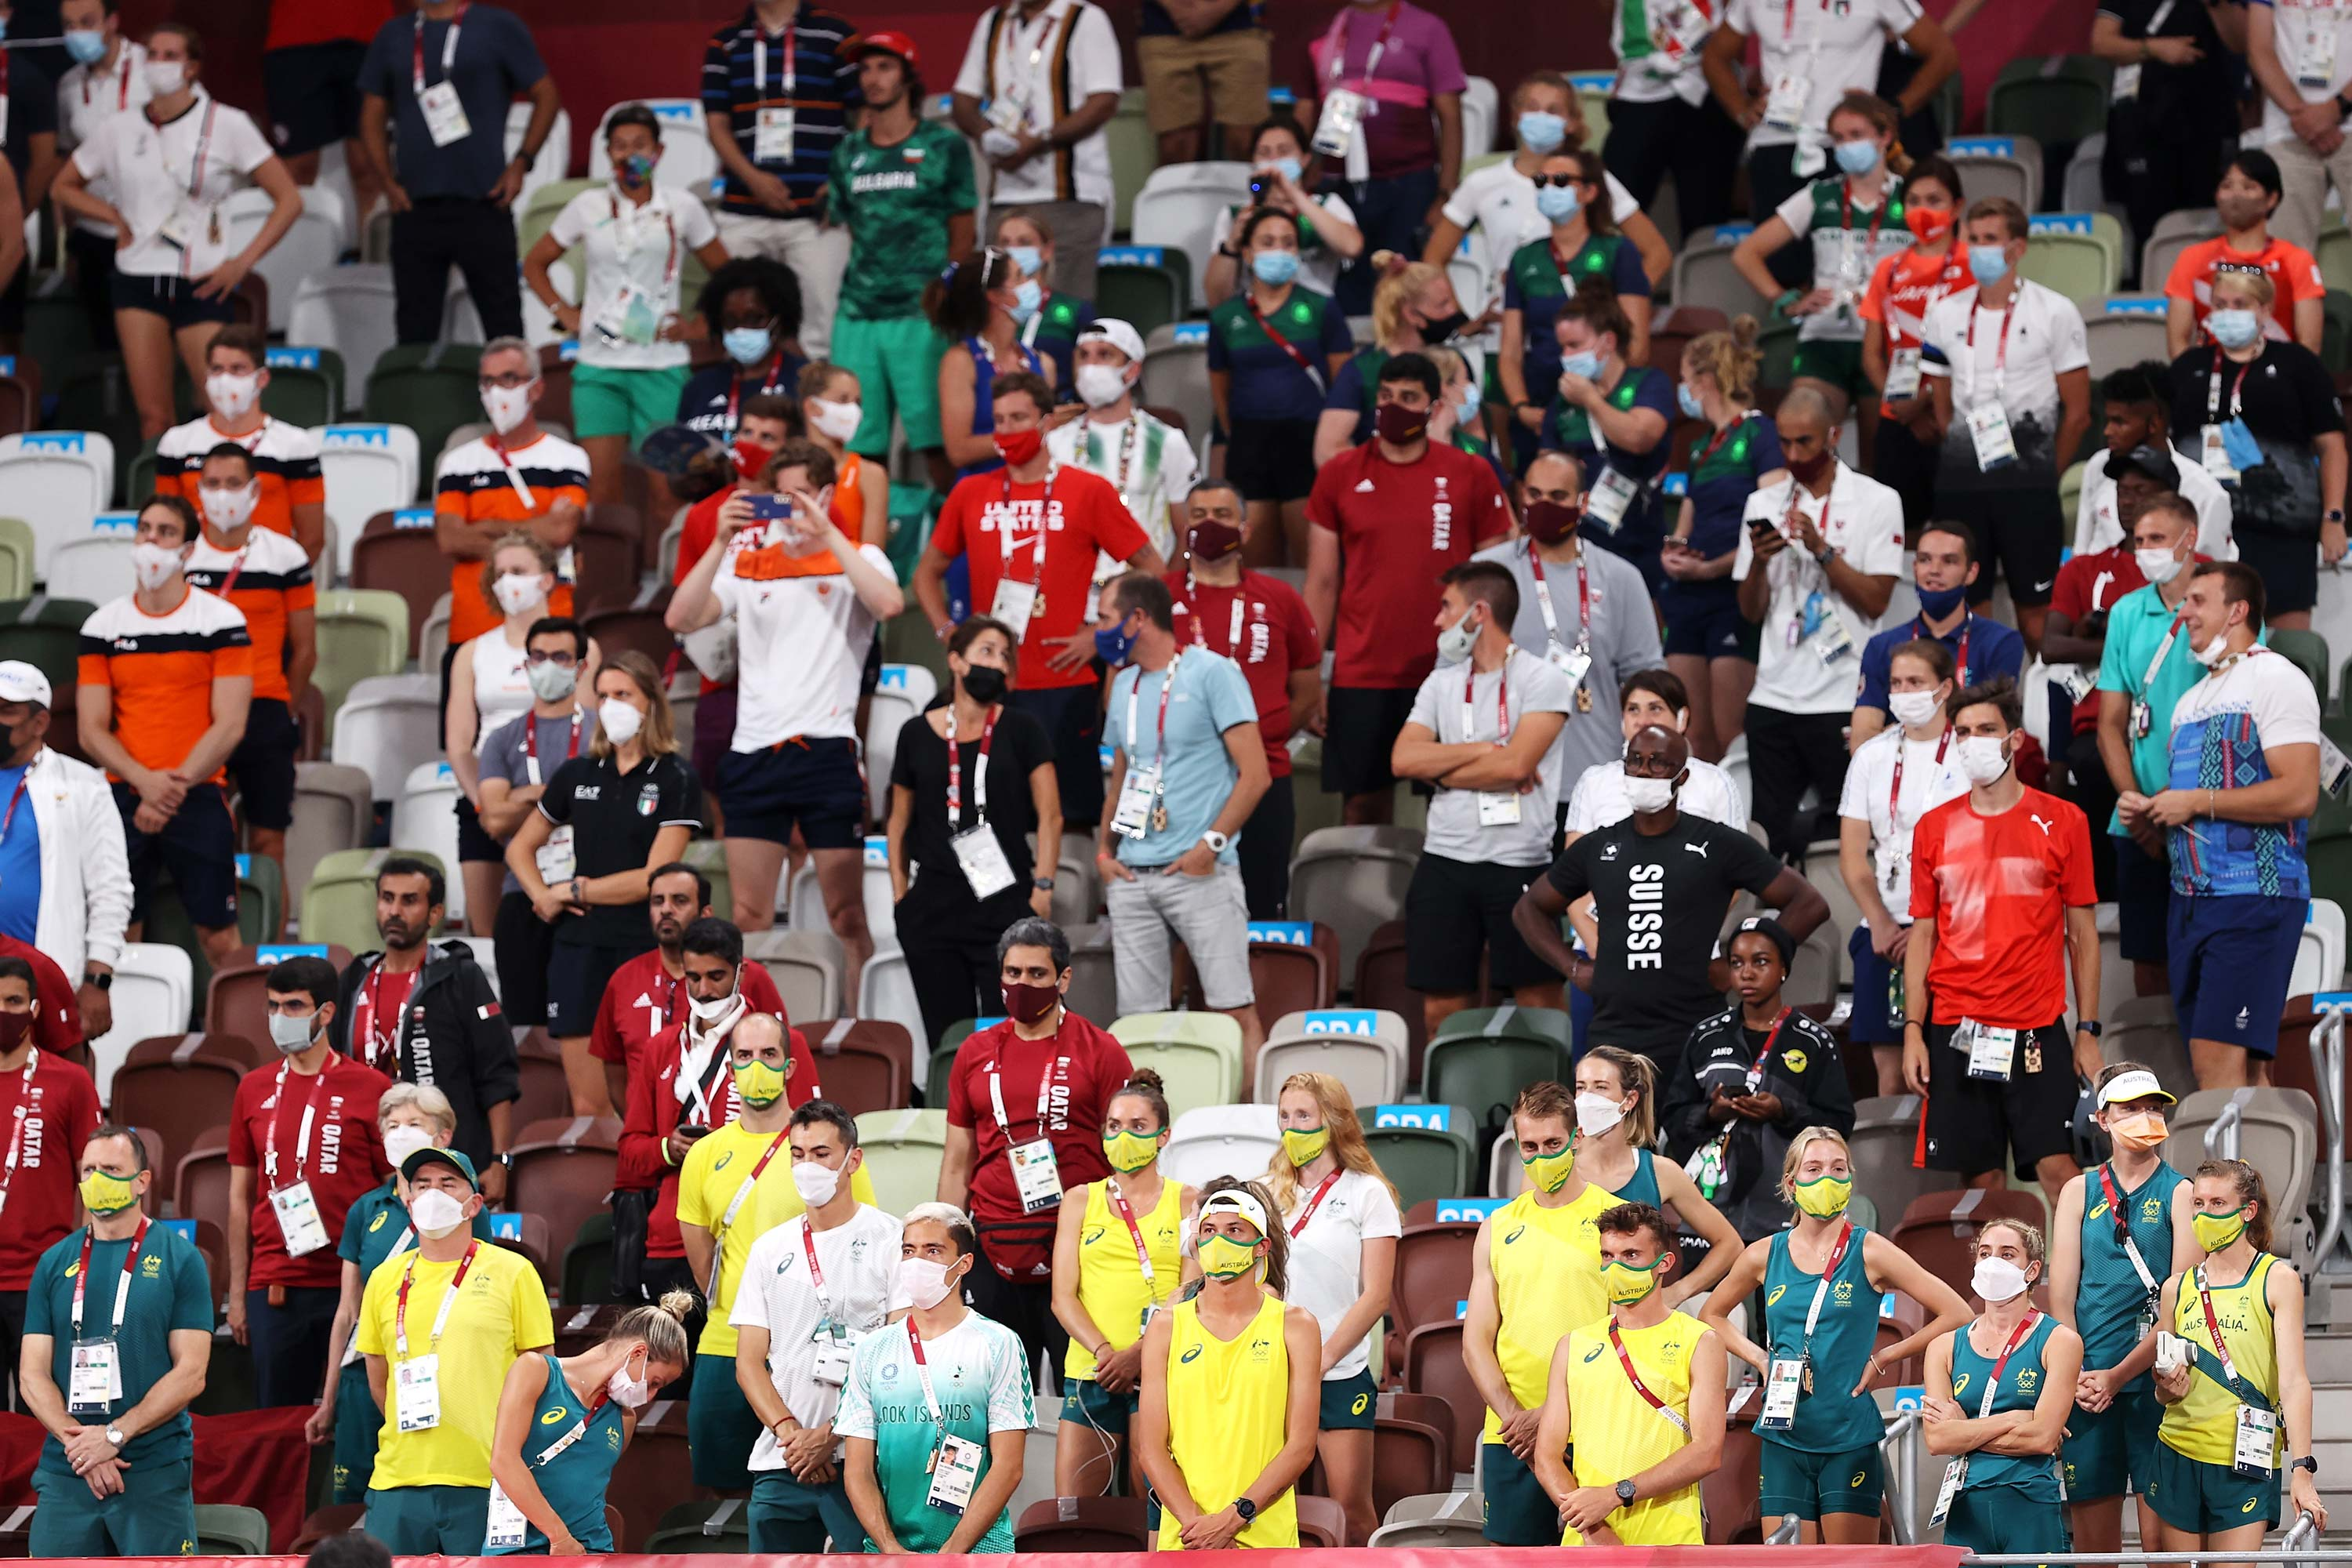 Athletes and officials look on from the stands on August 1 at the Olympic Stadium.